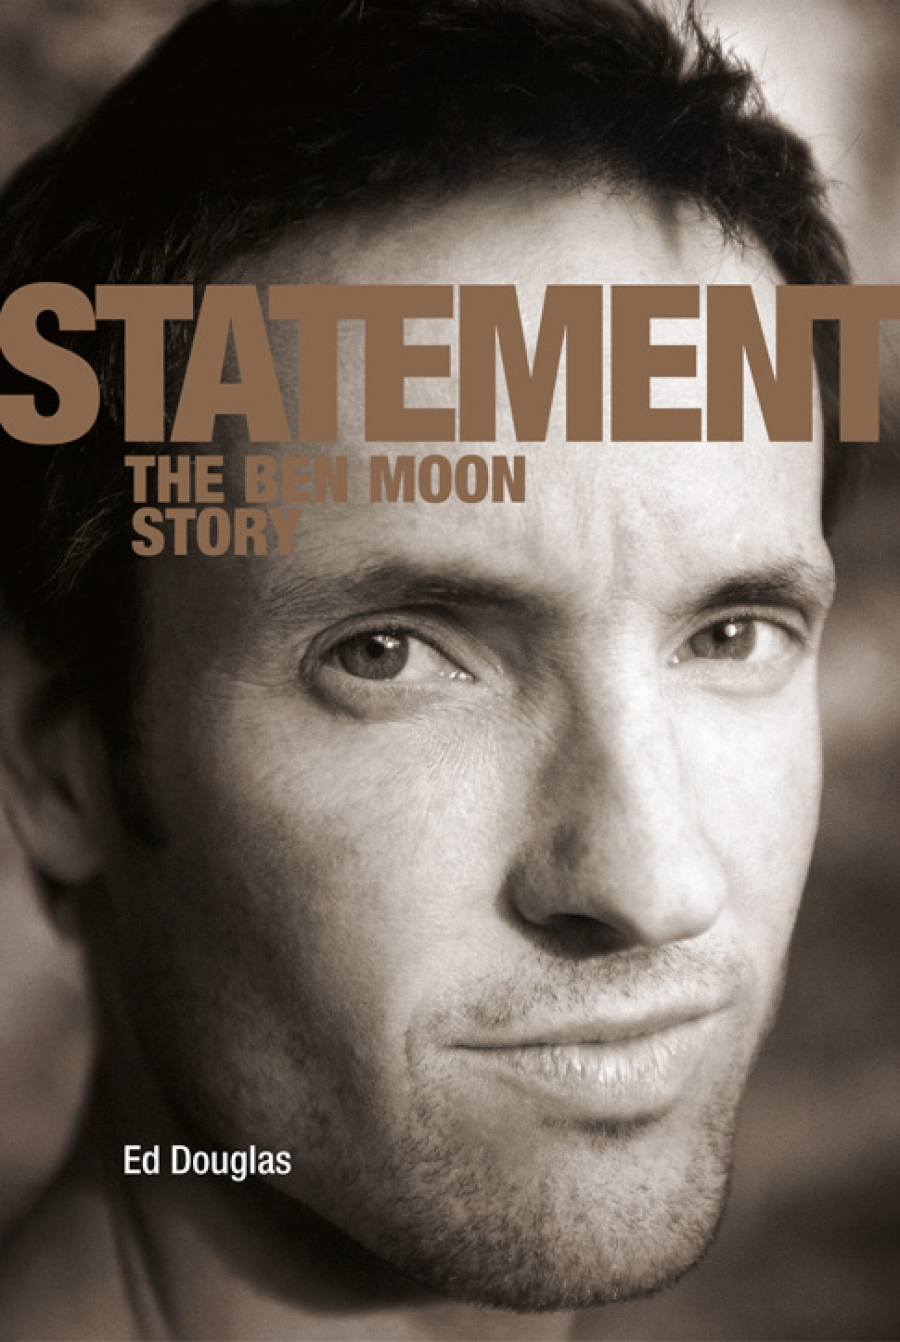 Statement - The Ben Moon Story by Ed Douglas reviewed